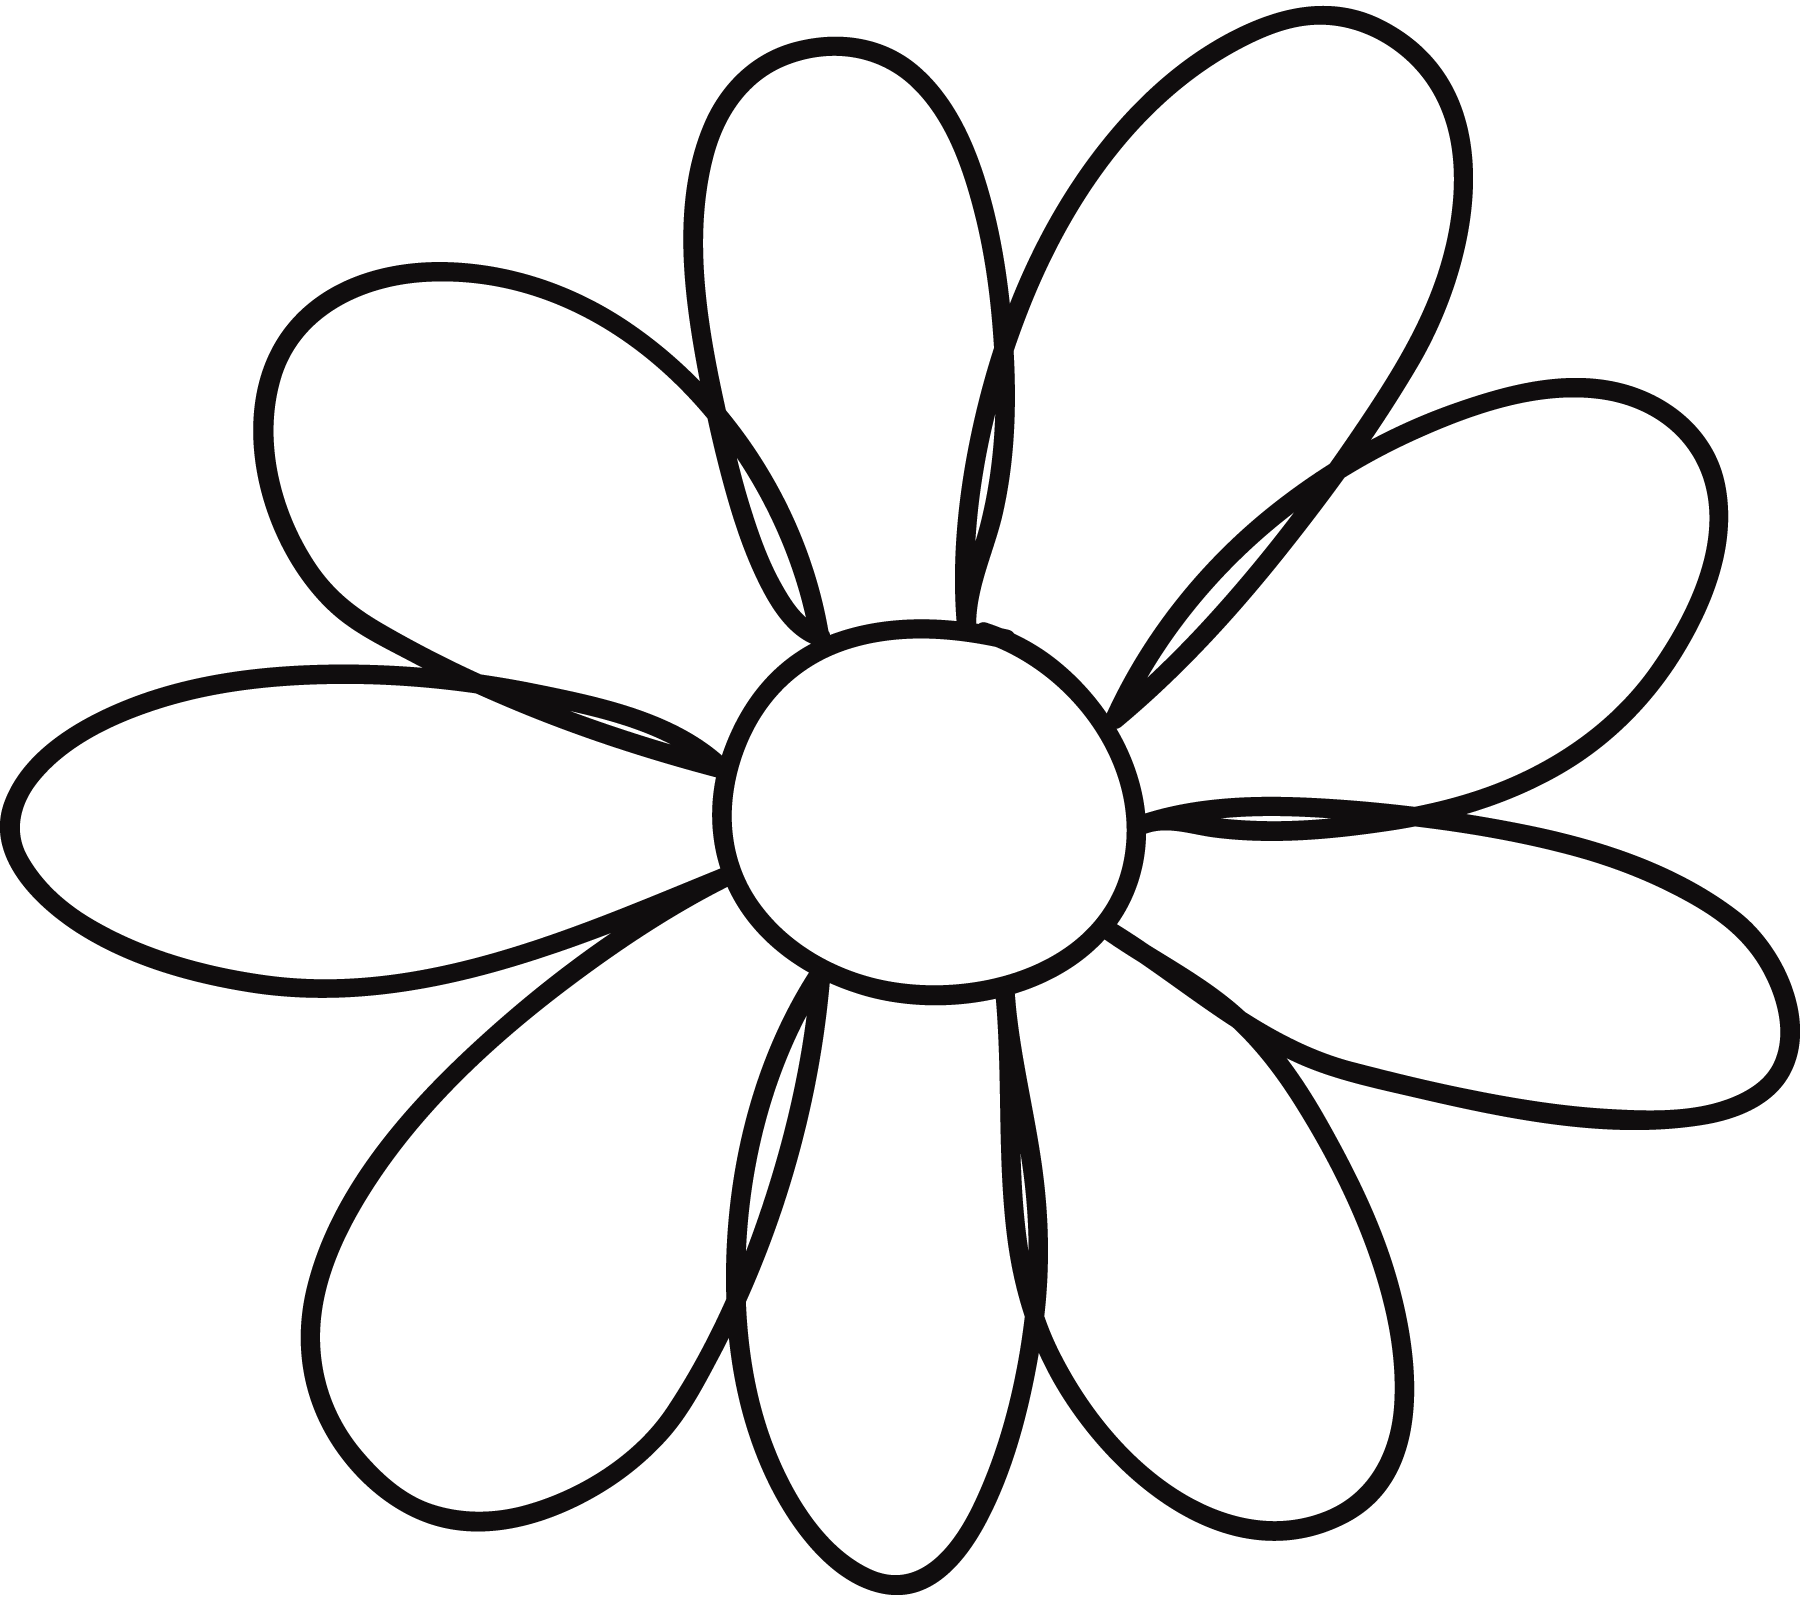 Invaluable image intended for printable flowers pattern